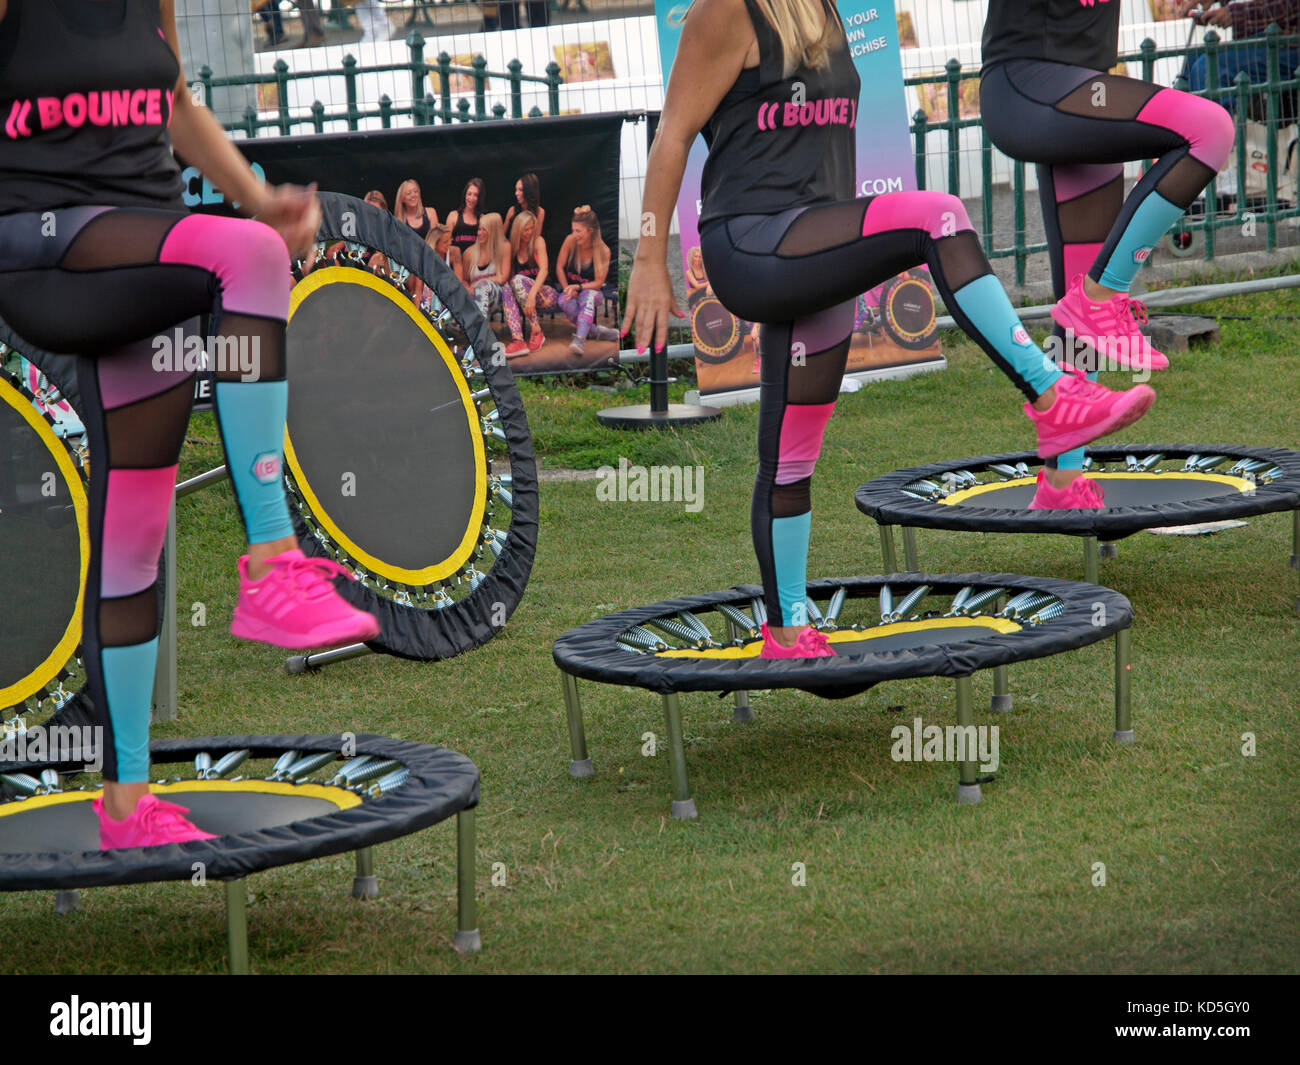 trampolines stock photos trampolines stock images alamy. Black Bedroom Furniture Sets. Home Design Ideas